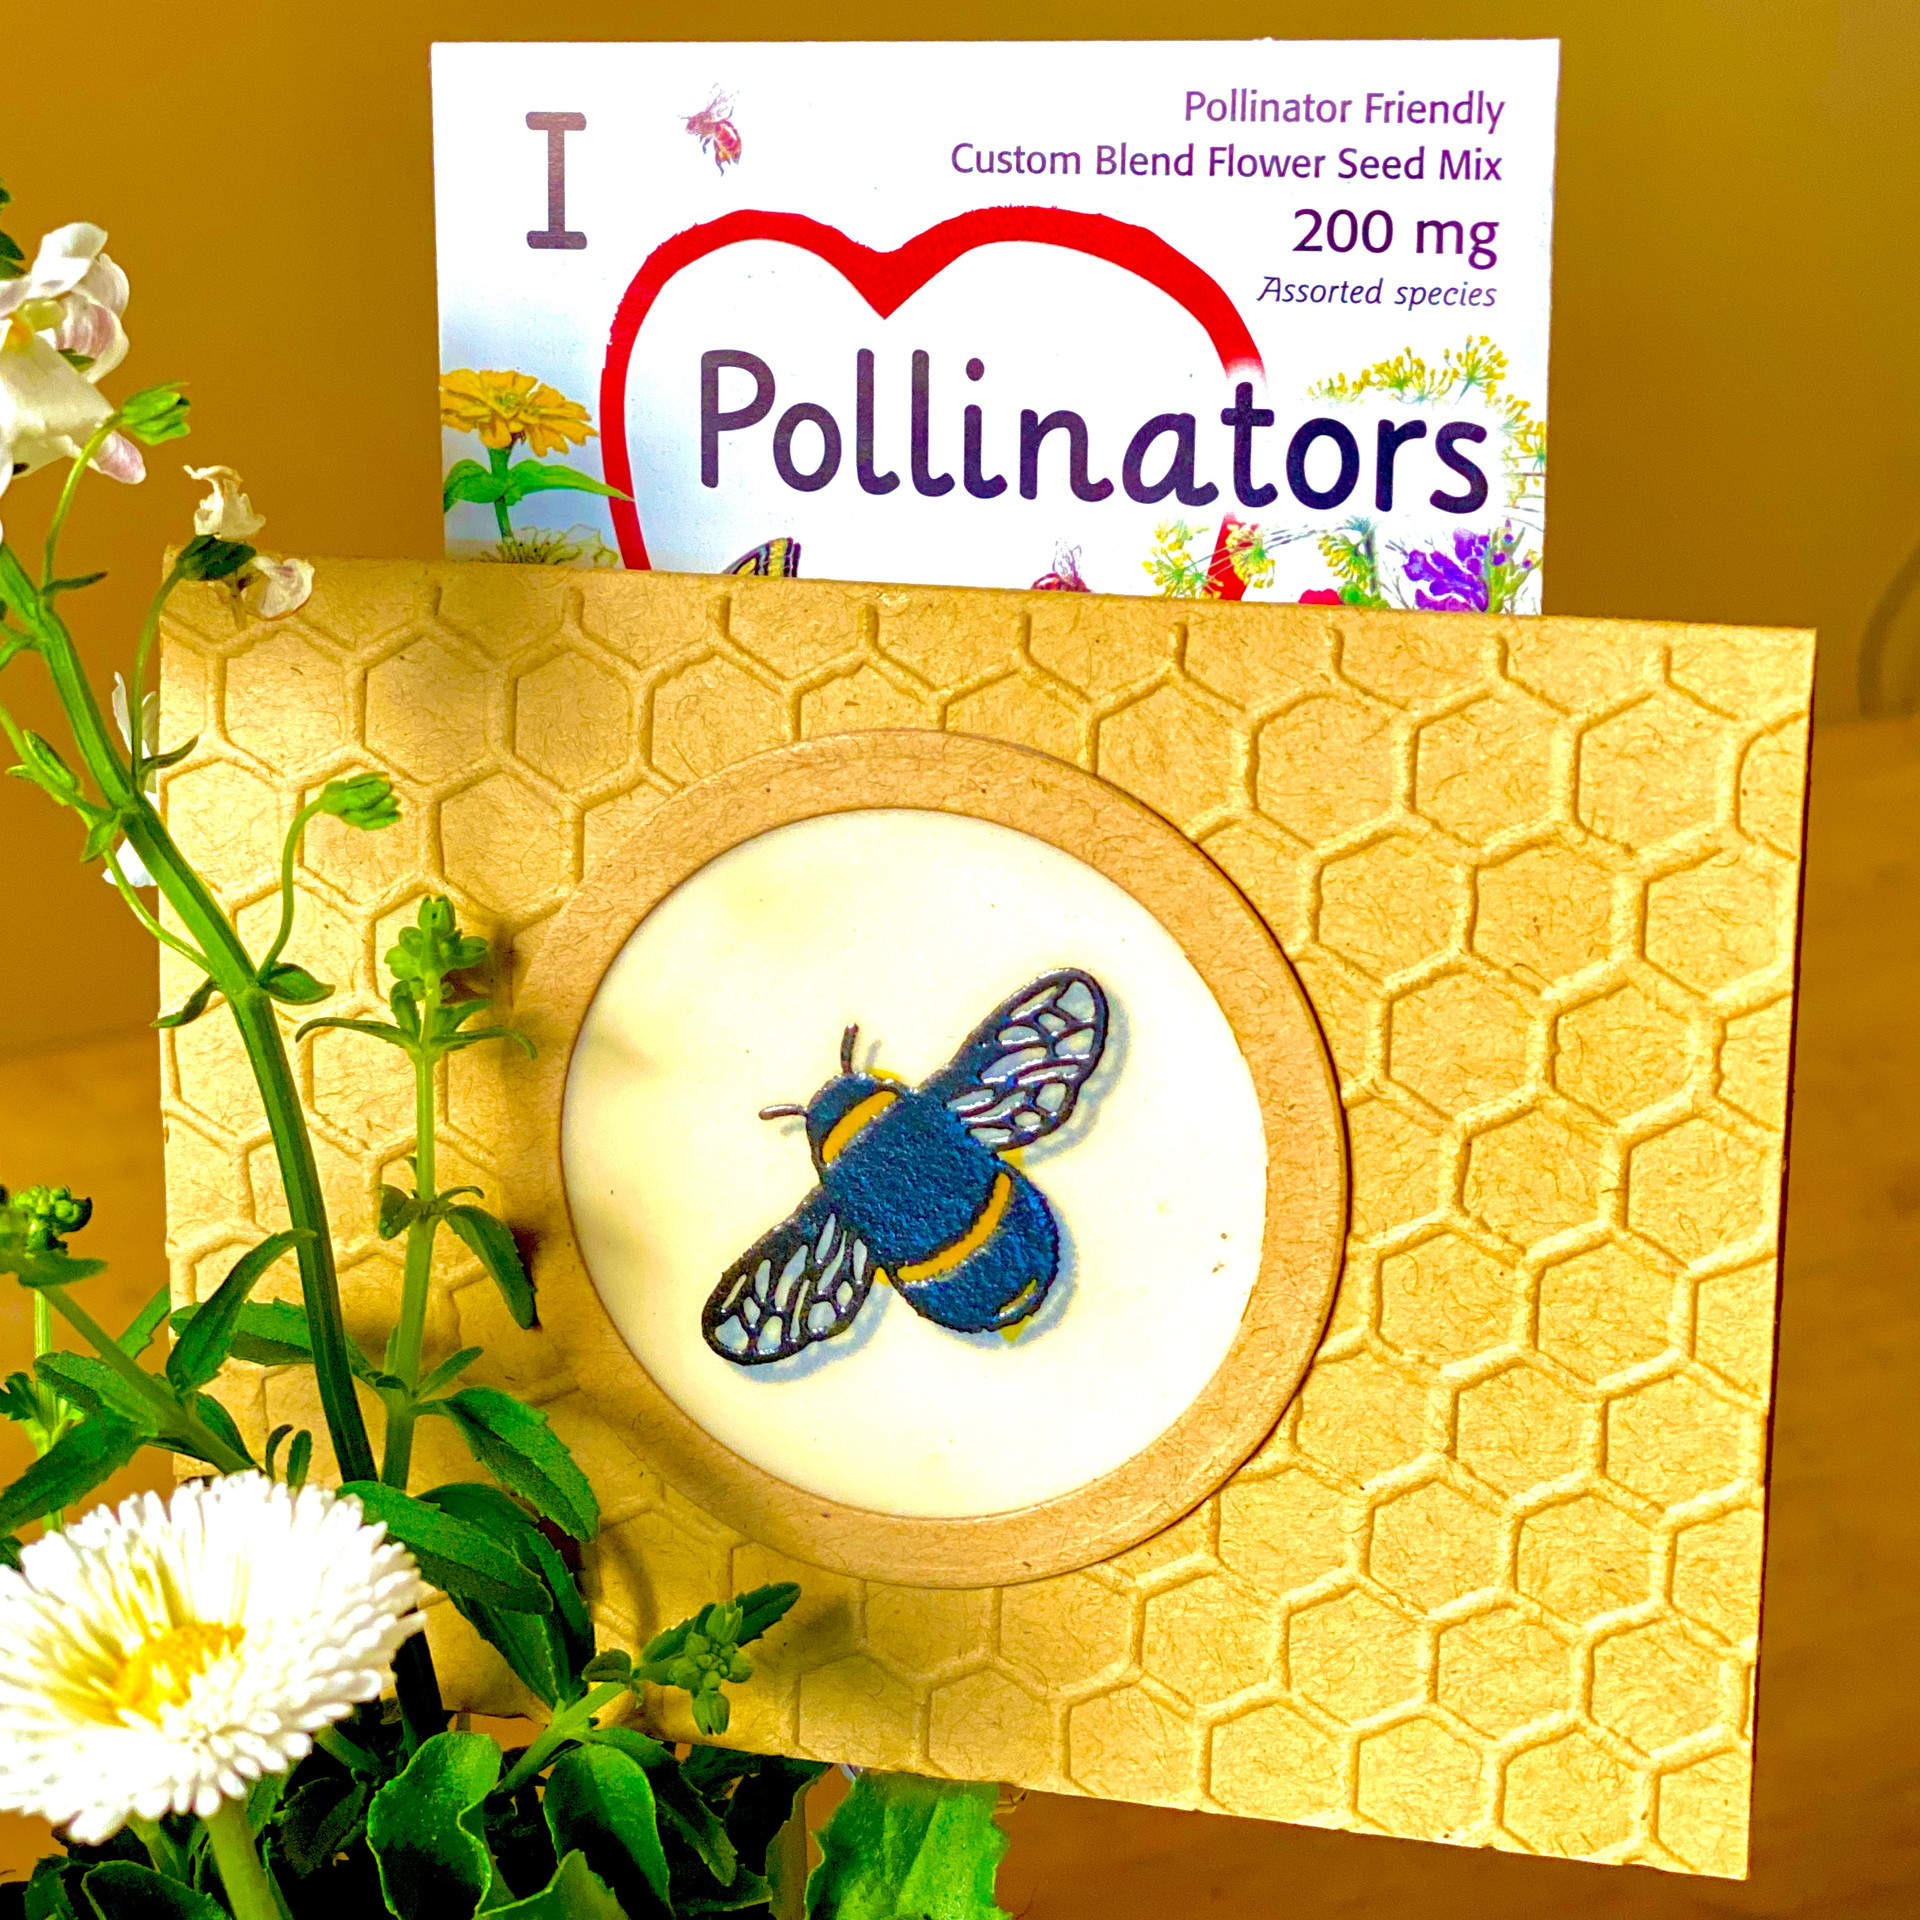 Handmade Card and Pollinato Seeds with Garden